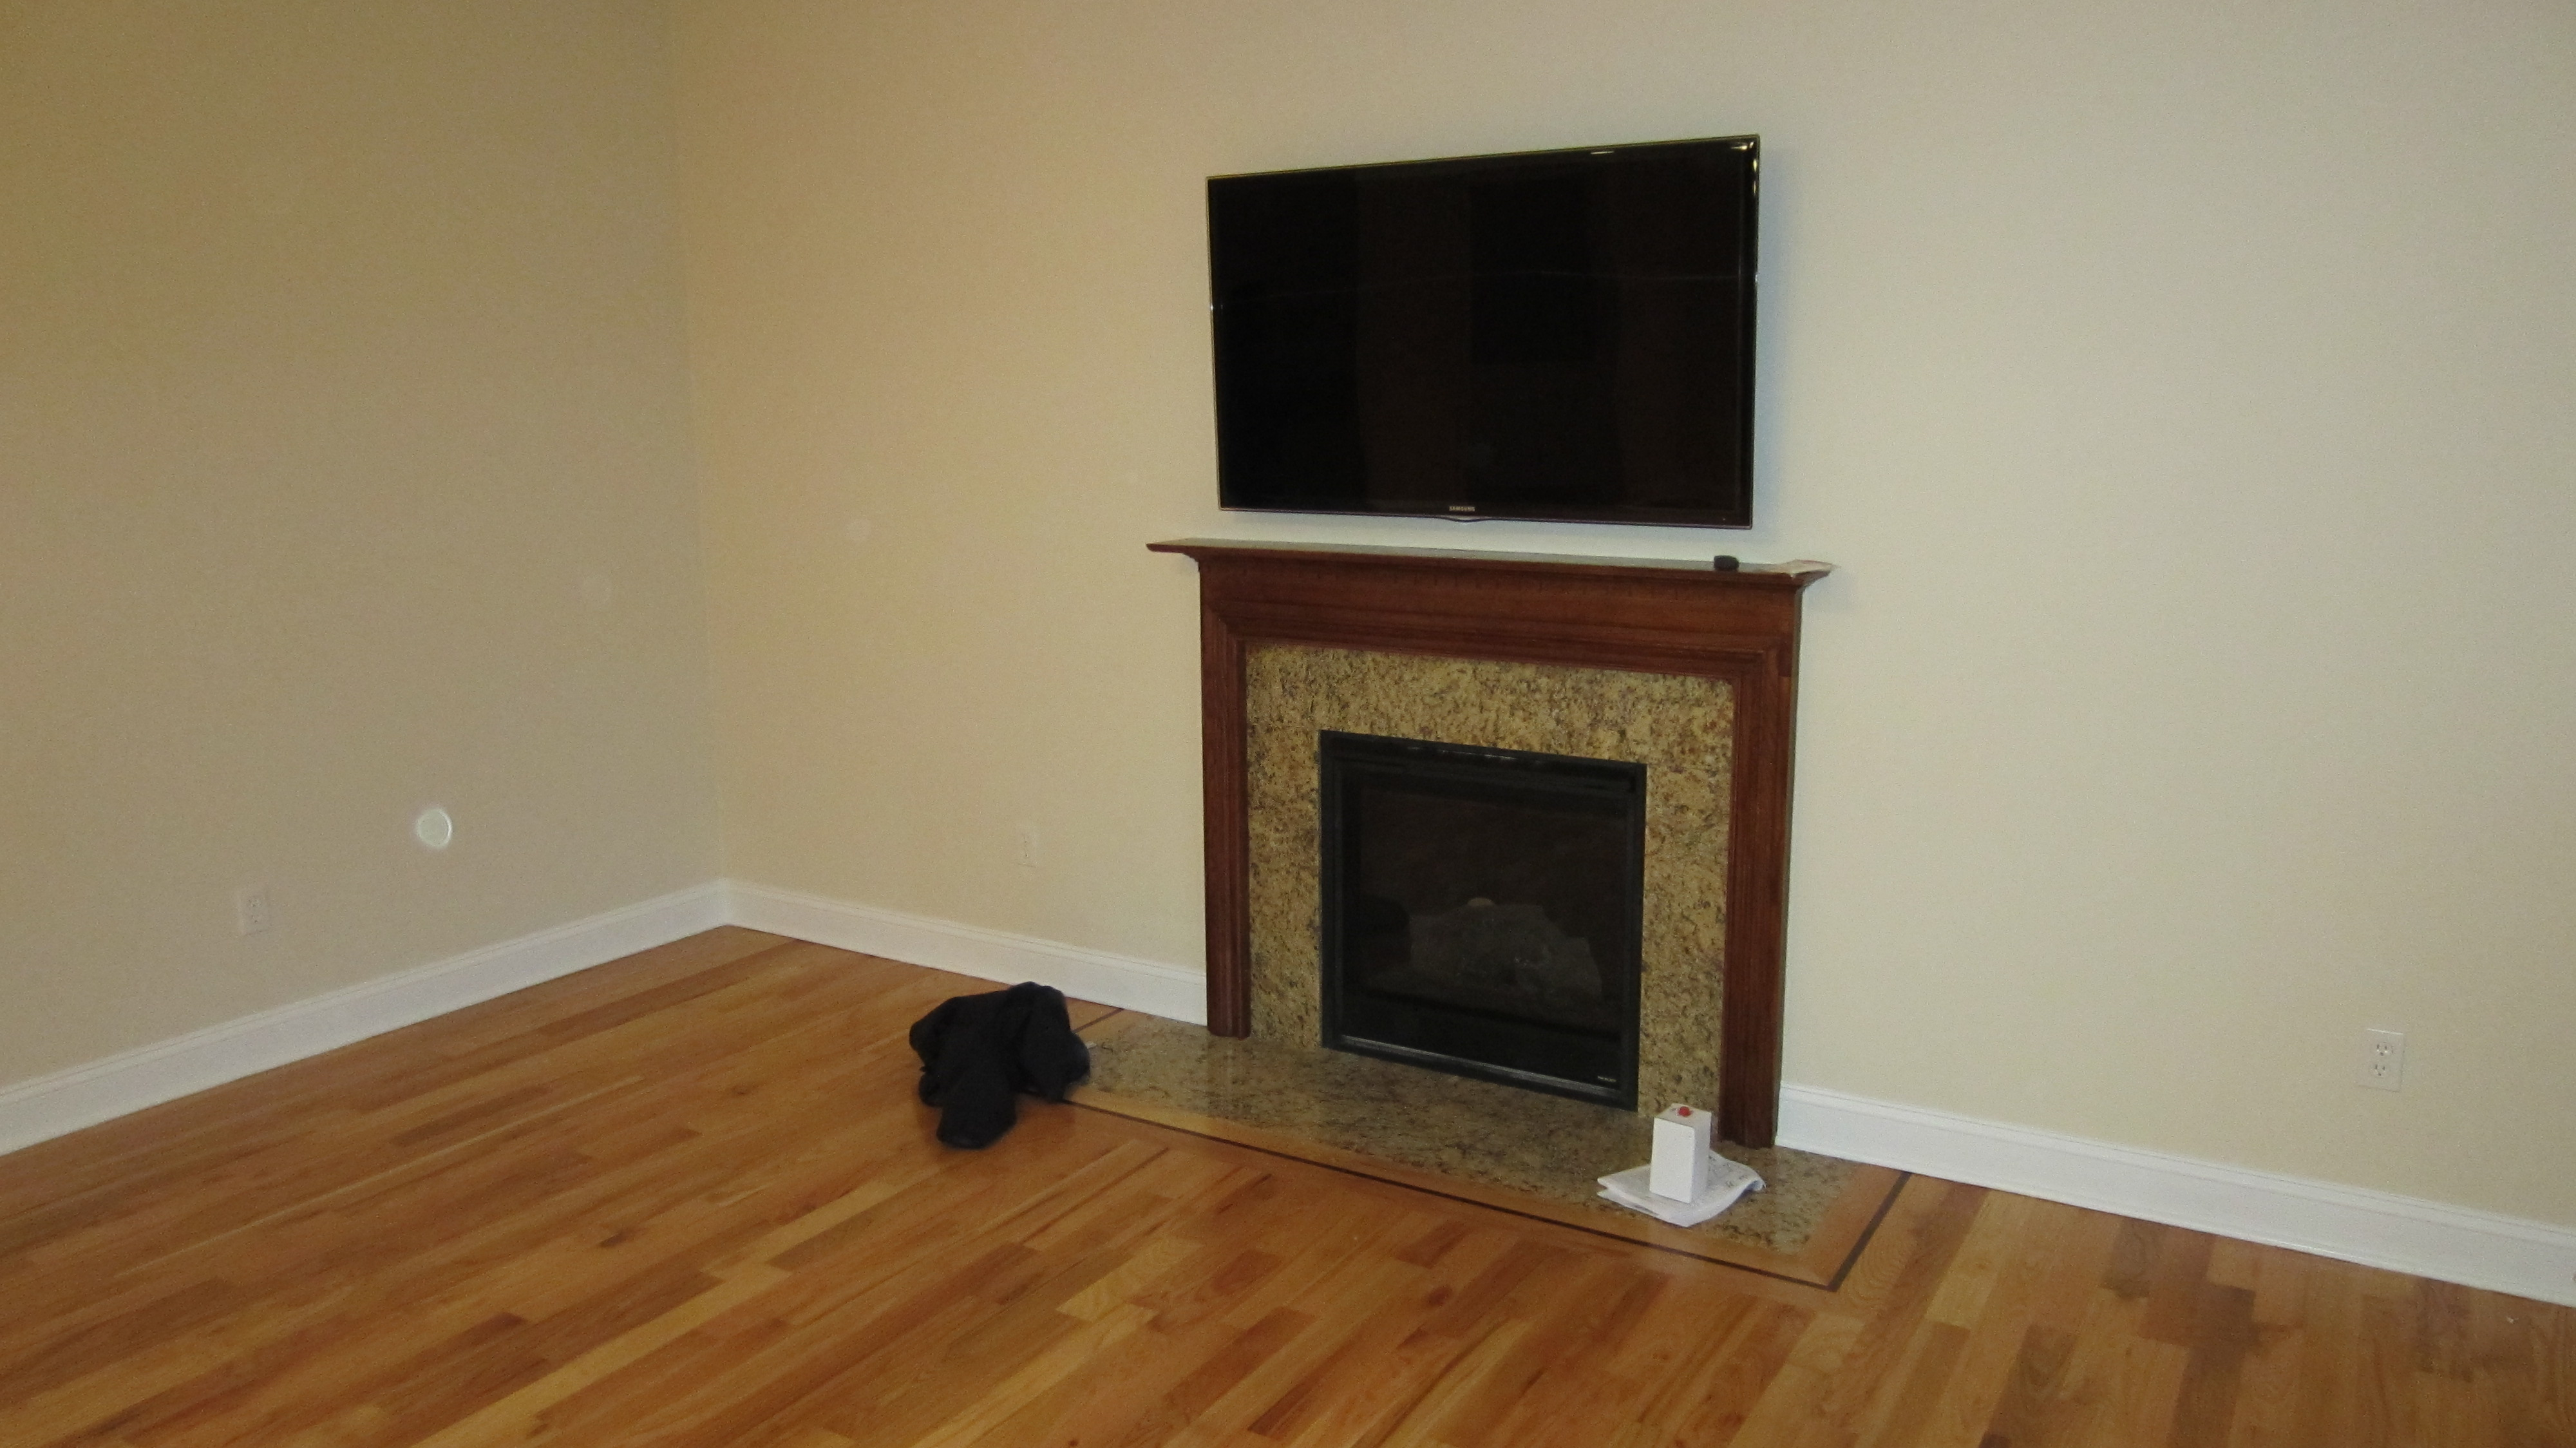 Deep River Ct Mount Tv Above Fireplace Home Theater Installation